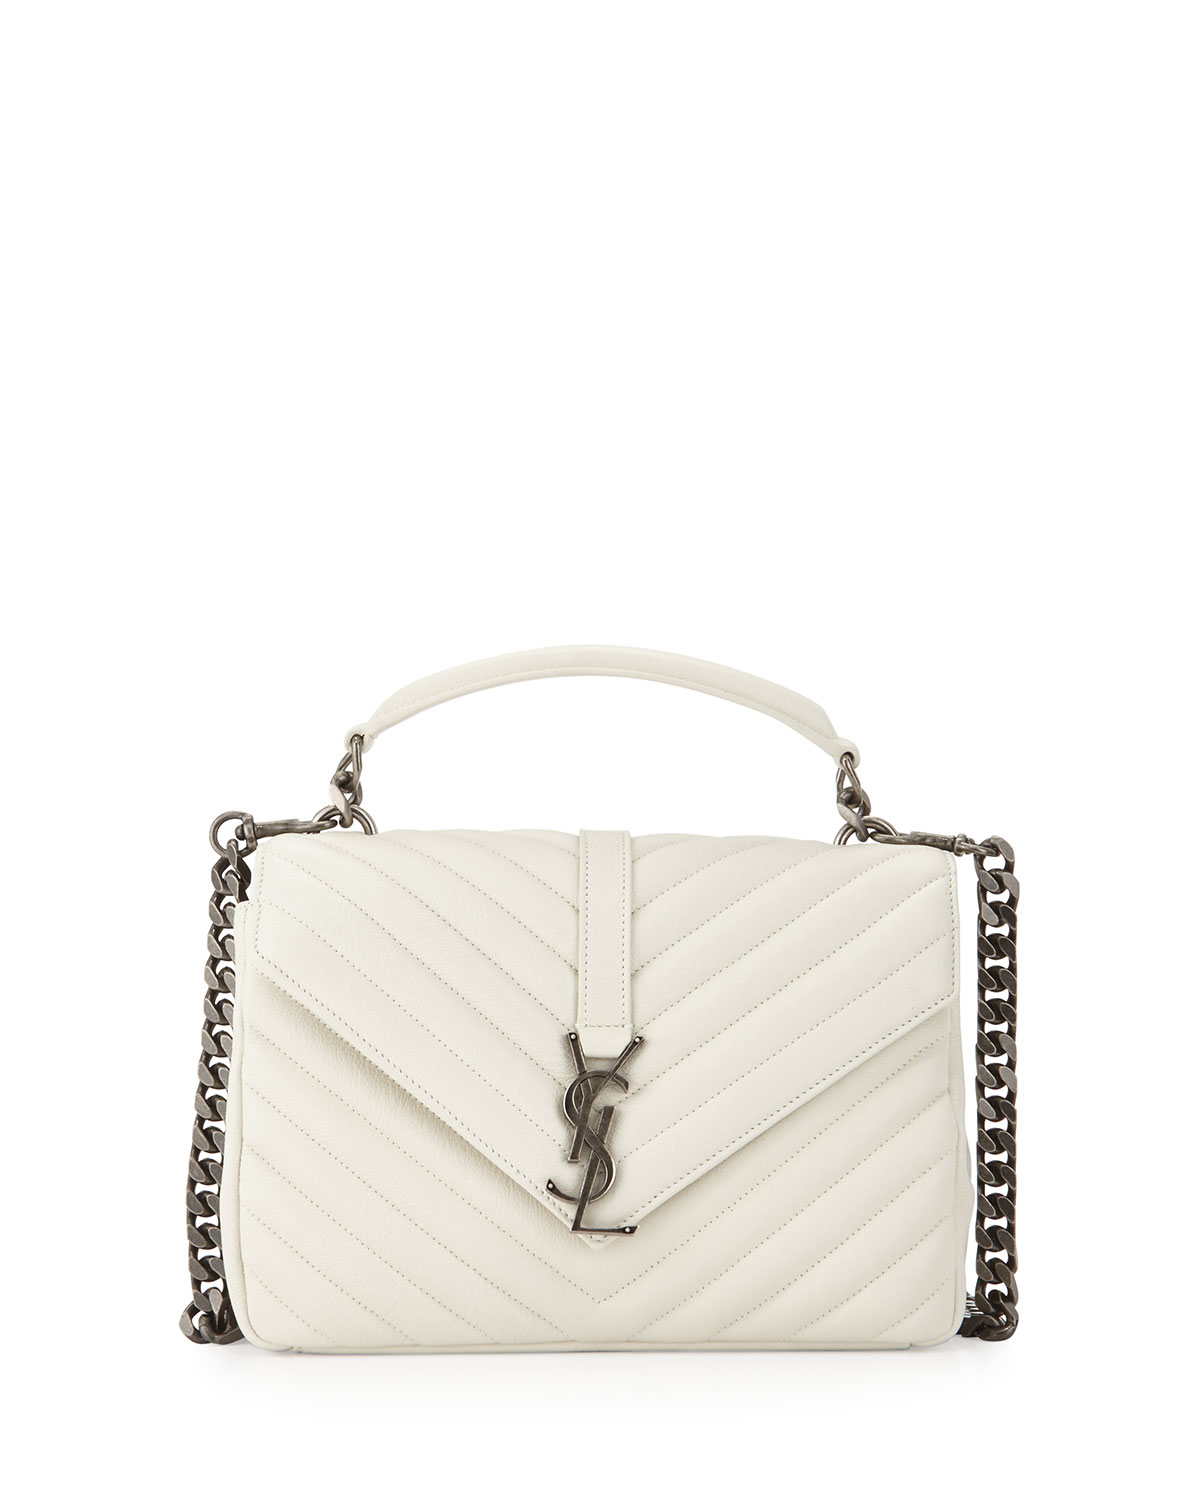 8d679b938c Saint Laurent Monogram College Medium Shoulder Bag